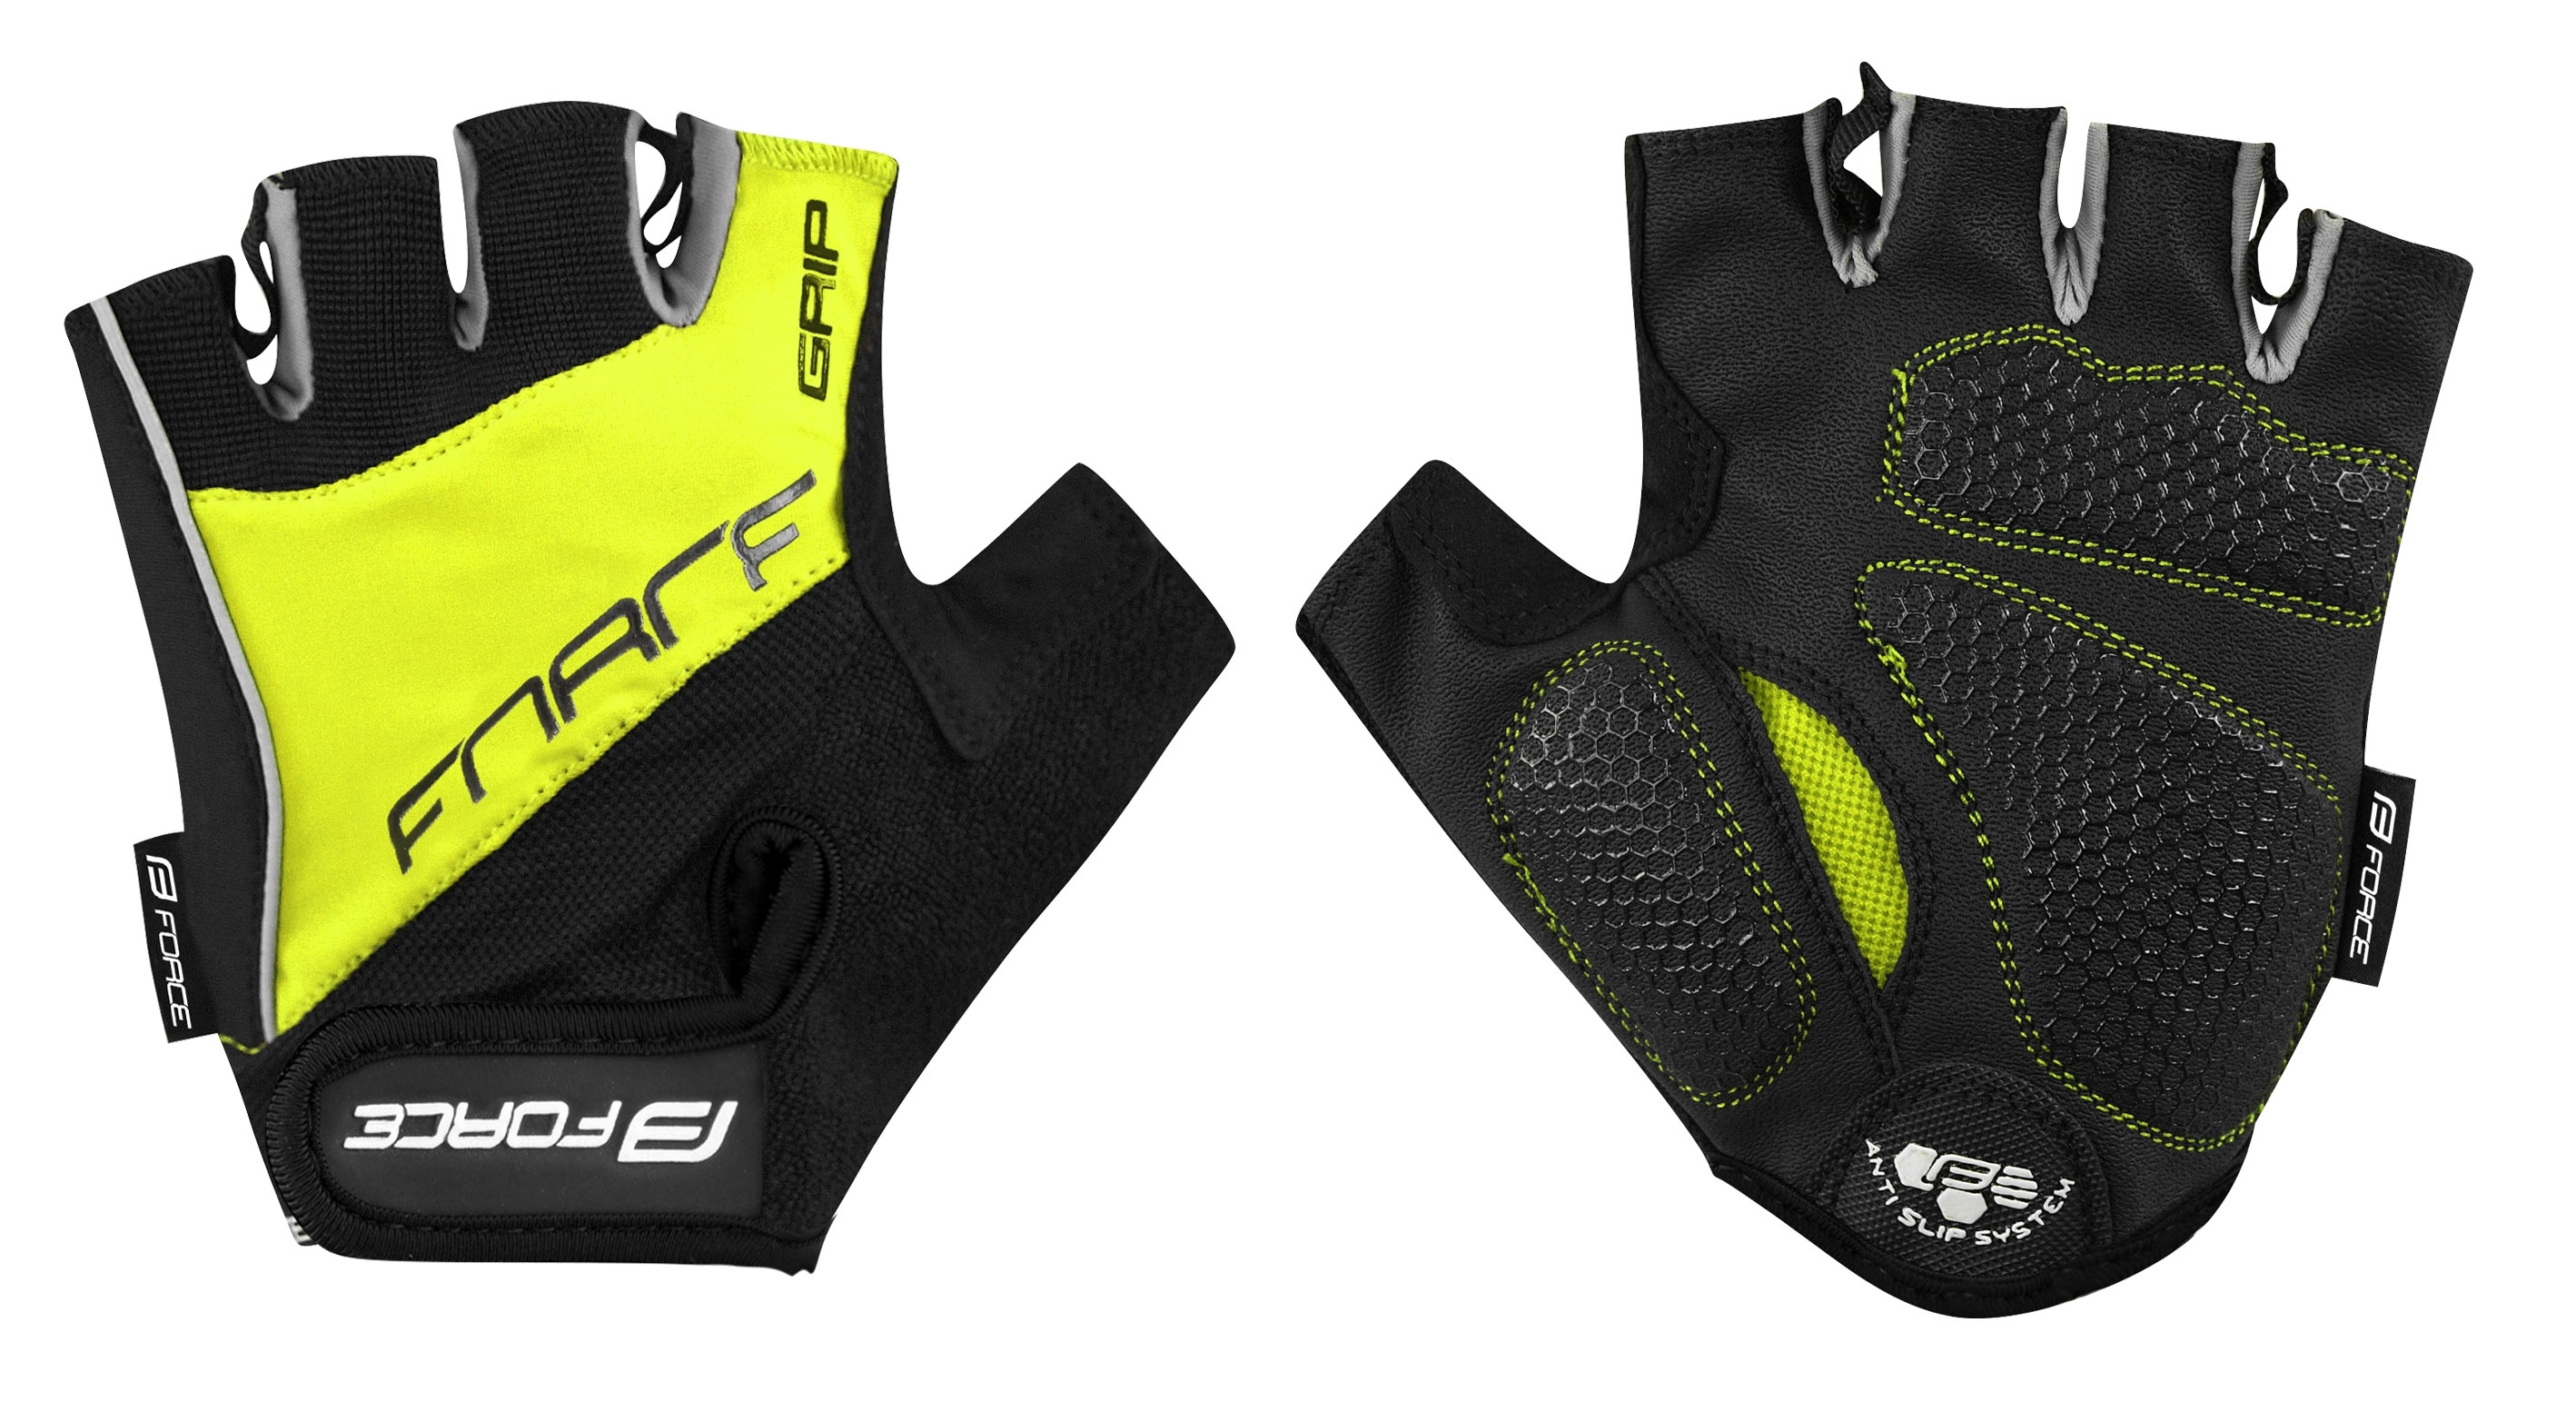 rukavice FORCE GRIP gel, fluo M